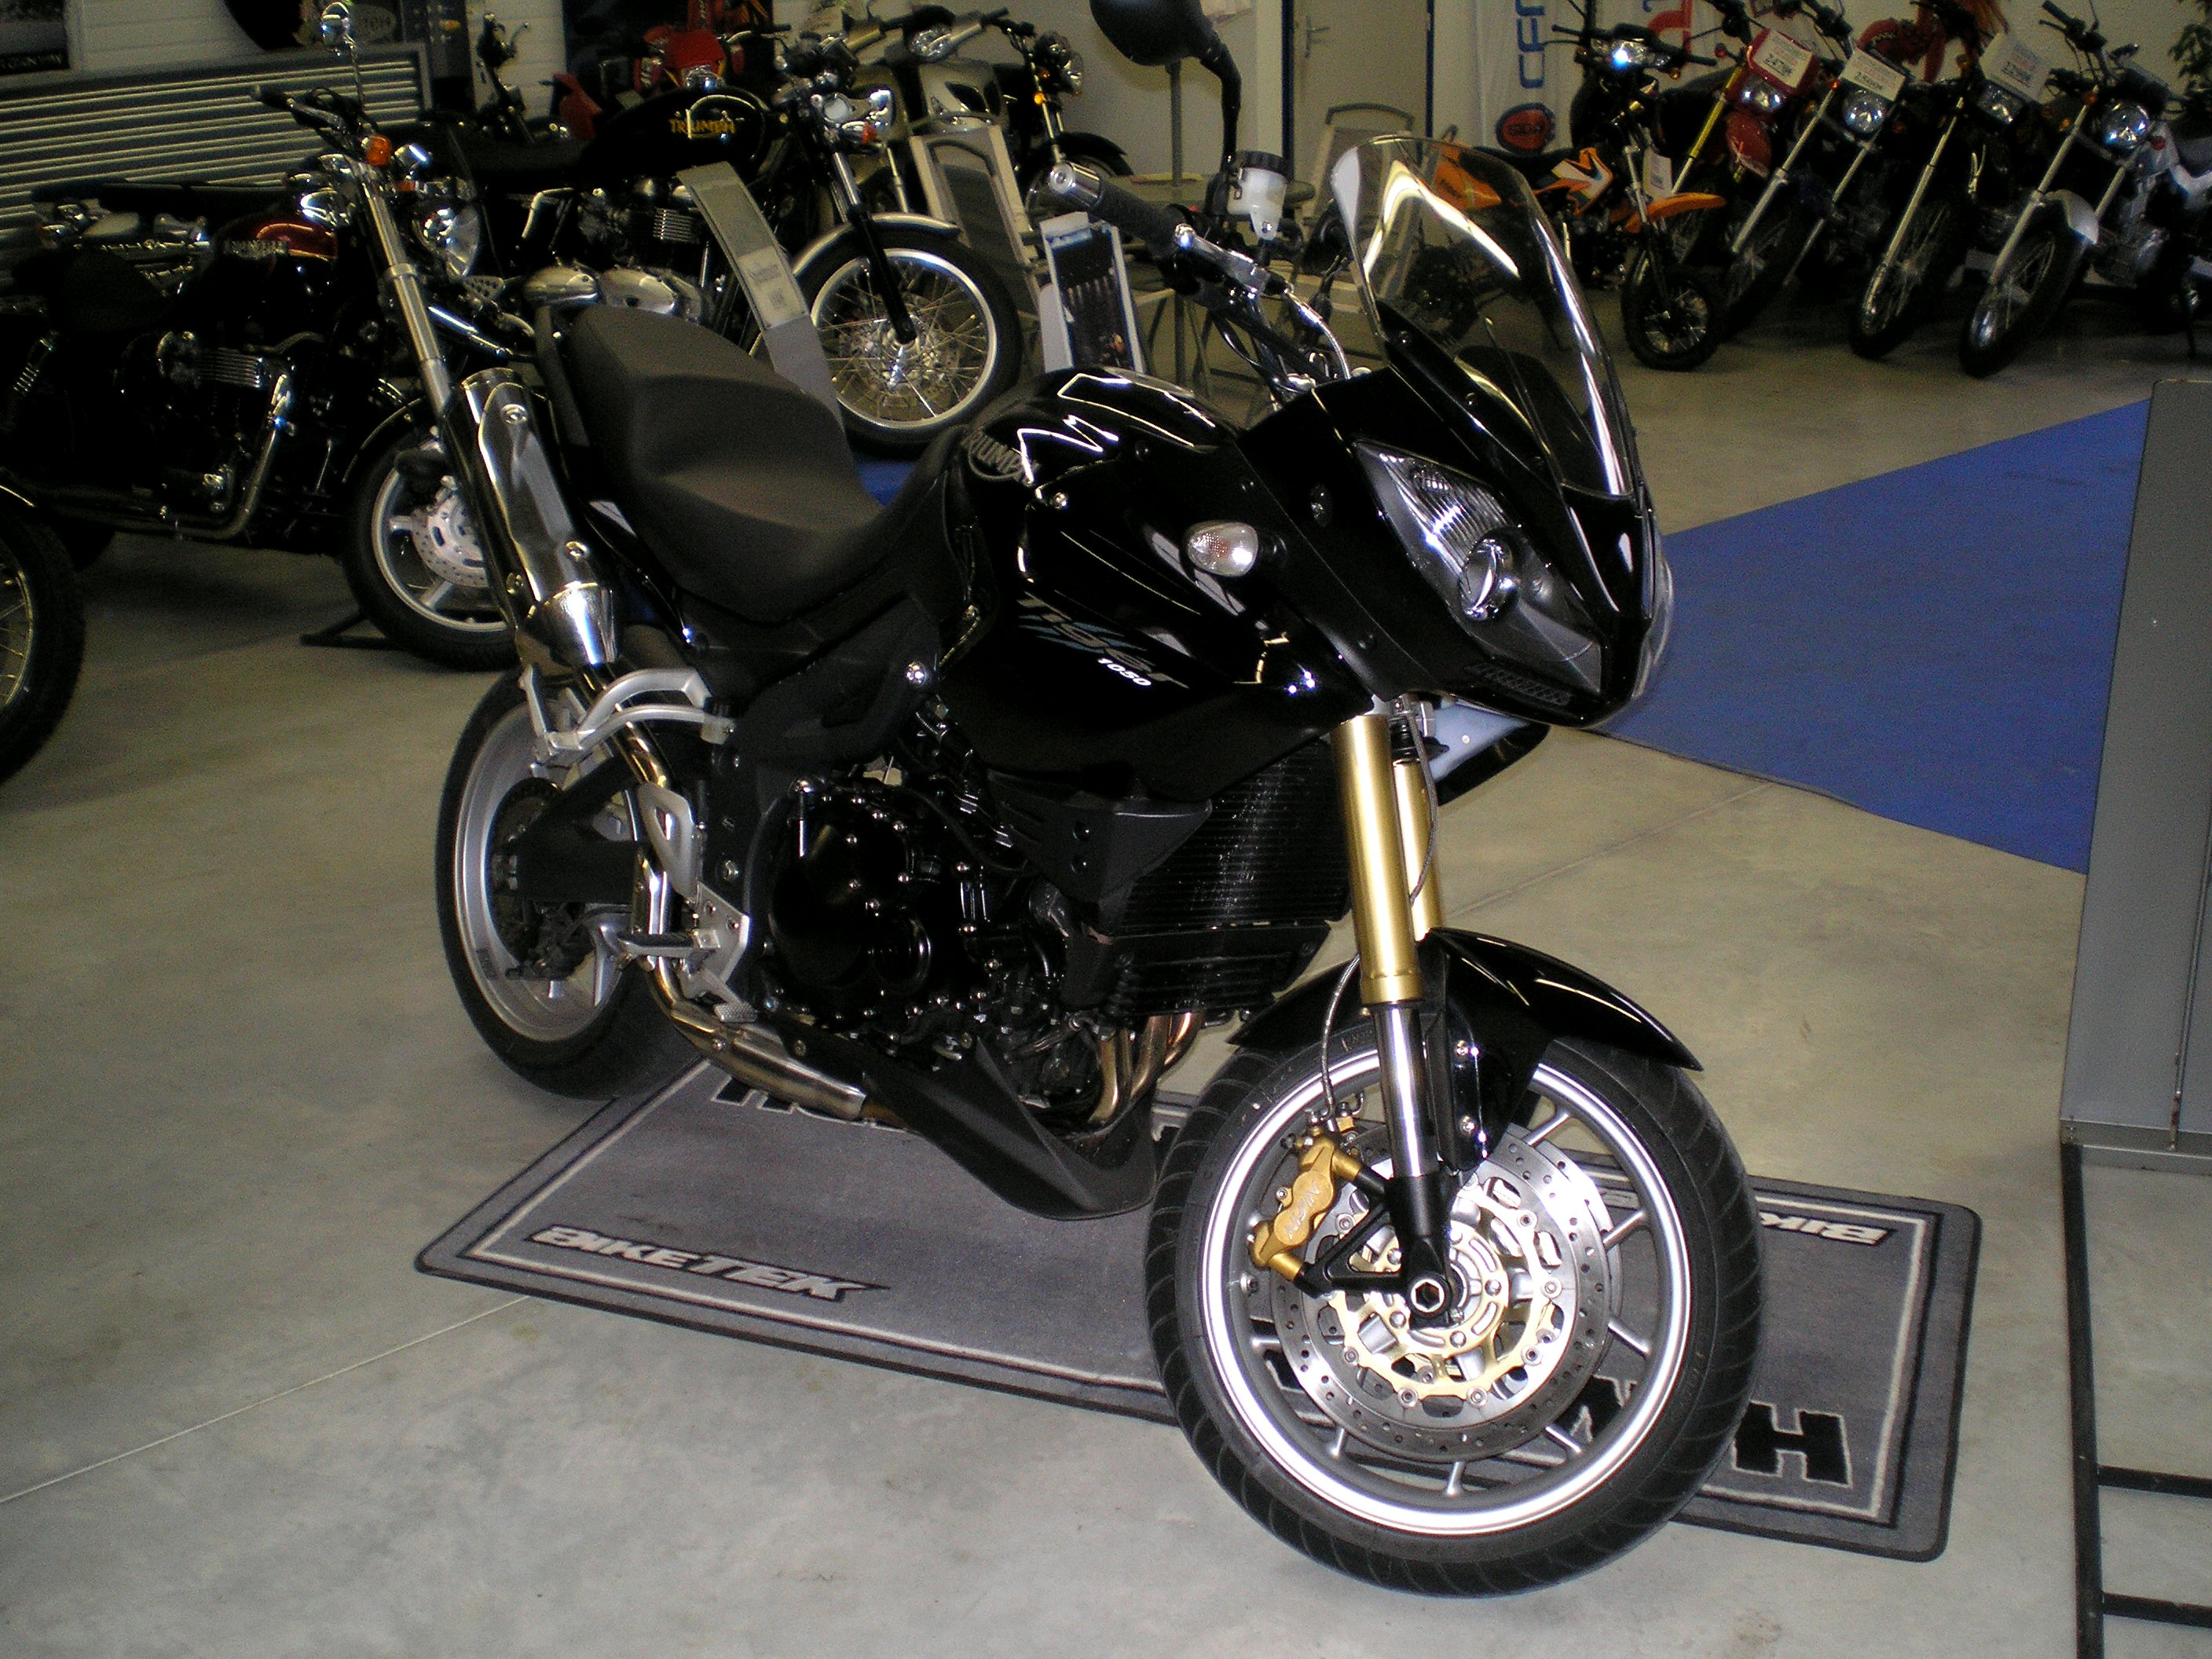 Triumph Tiger 900 2000 wallpapers #145735